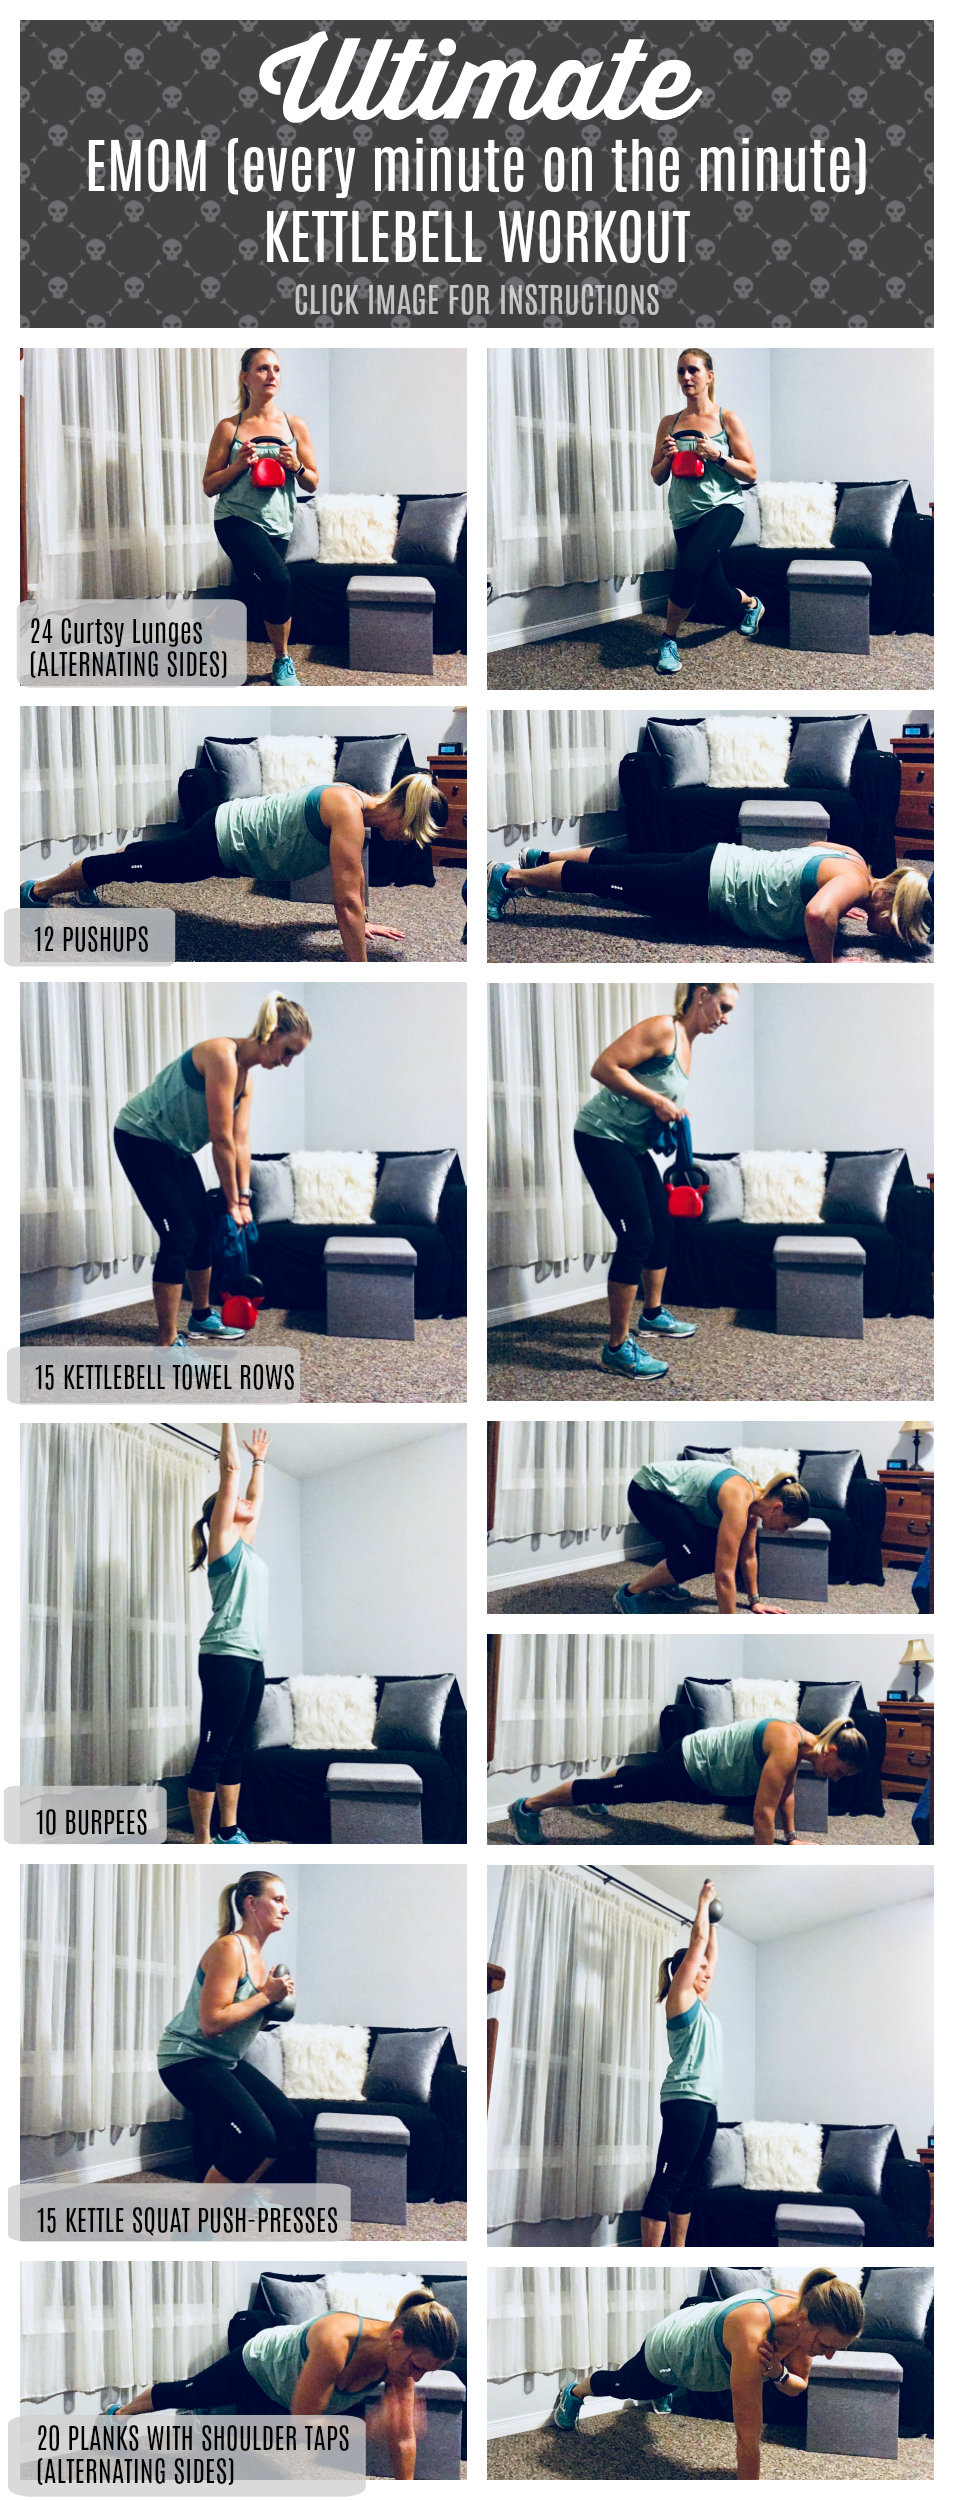 Ultimate EMOM Kettlebell Workout - 3 rounds of work, 7 minutes each round. Visit: https://www.salads4lunch.com/?p=35114 for instructions #kettlebell #workout